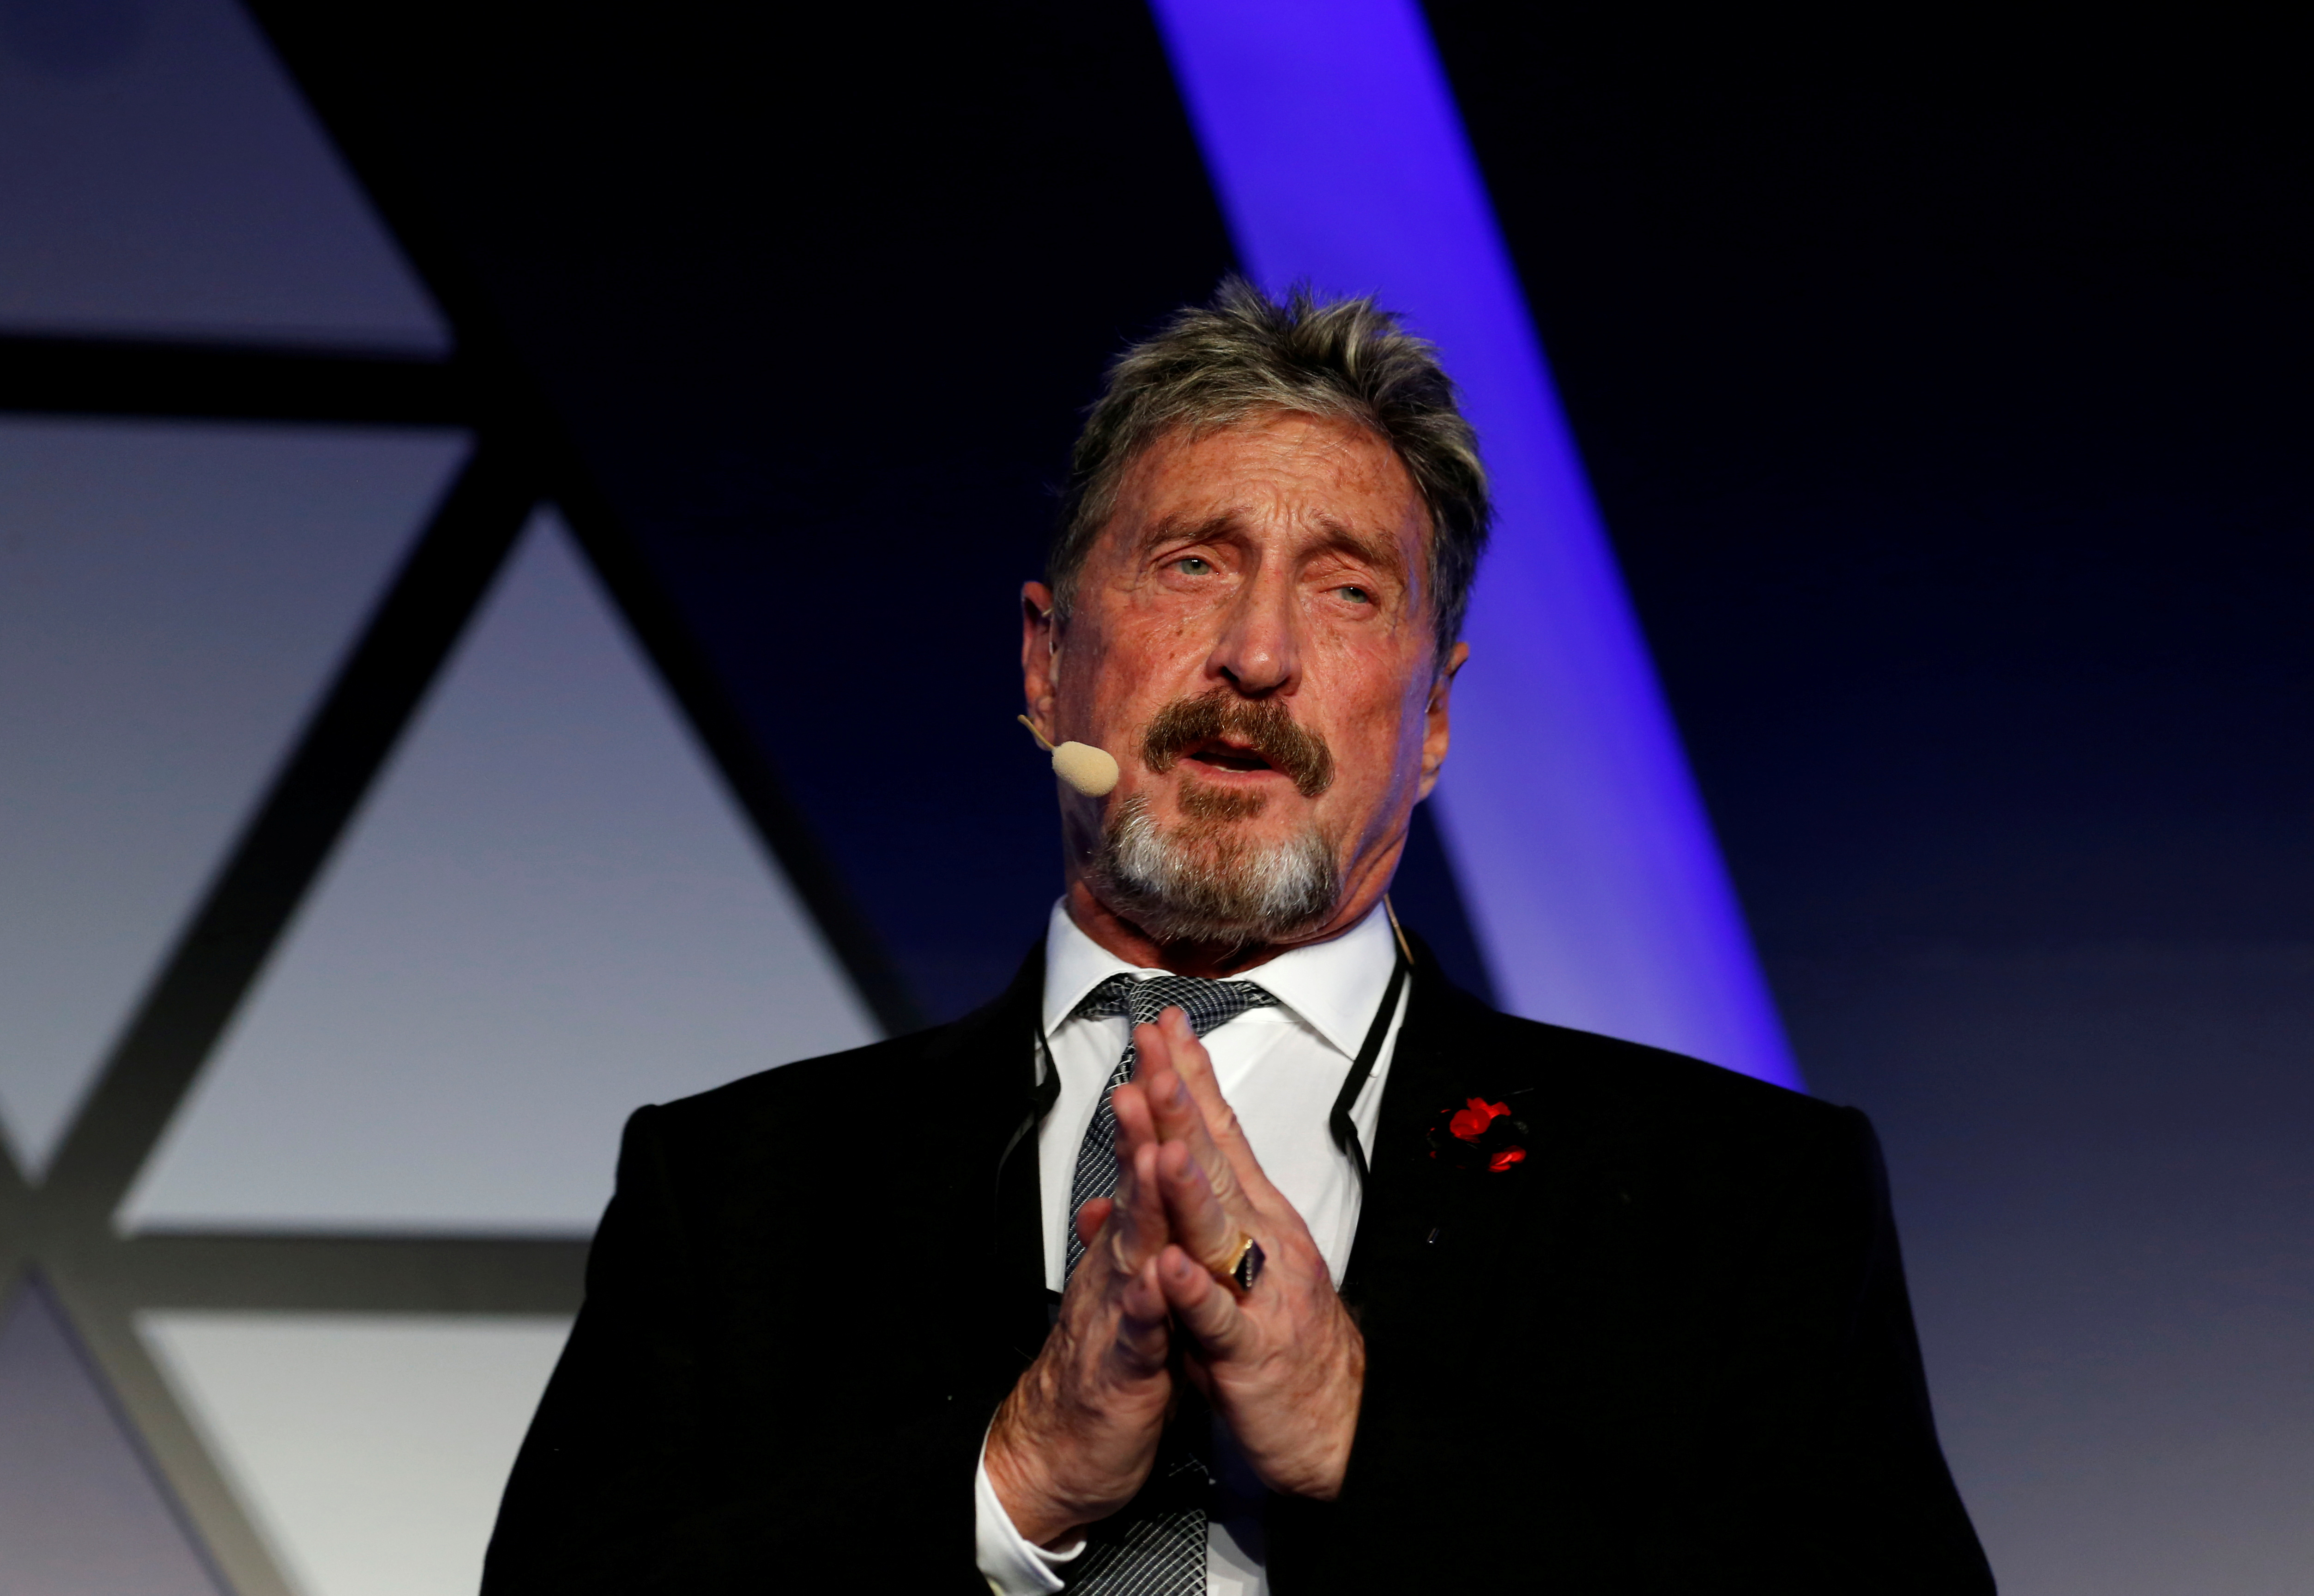 File photo: John McAfee, co-founder of McAfee Crypto Team and CEO of Luxcore and founder of McAfee Antivirus, speaks at the Malta Blockchain Summit in St Julian's, Malta. REUTERS/Darrin Zammit Lupi